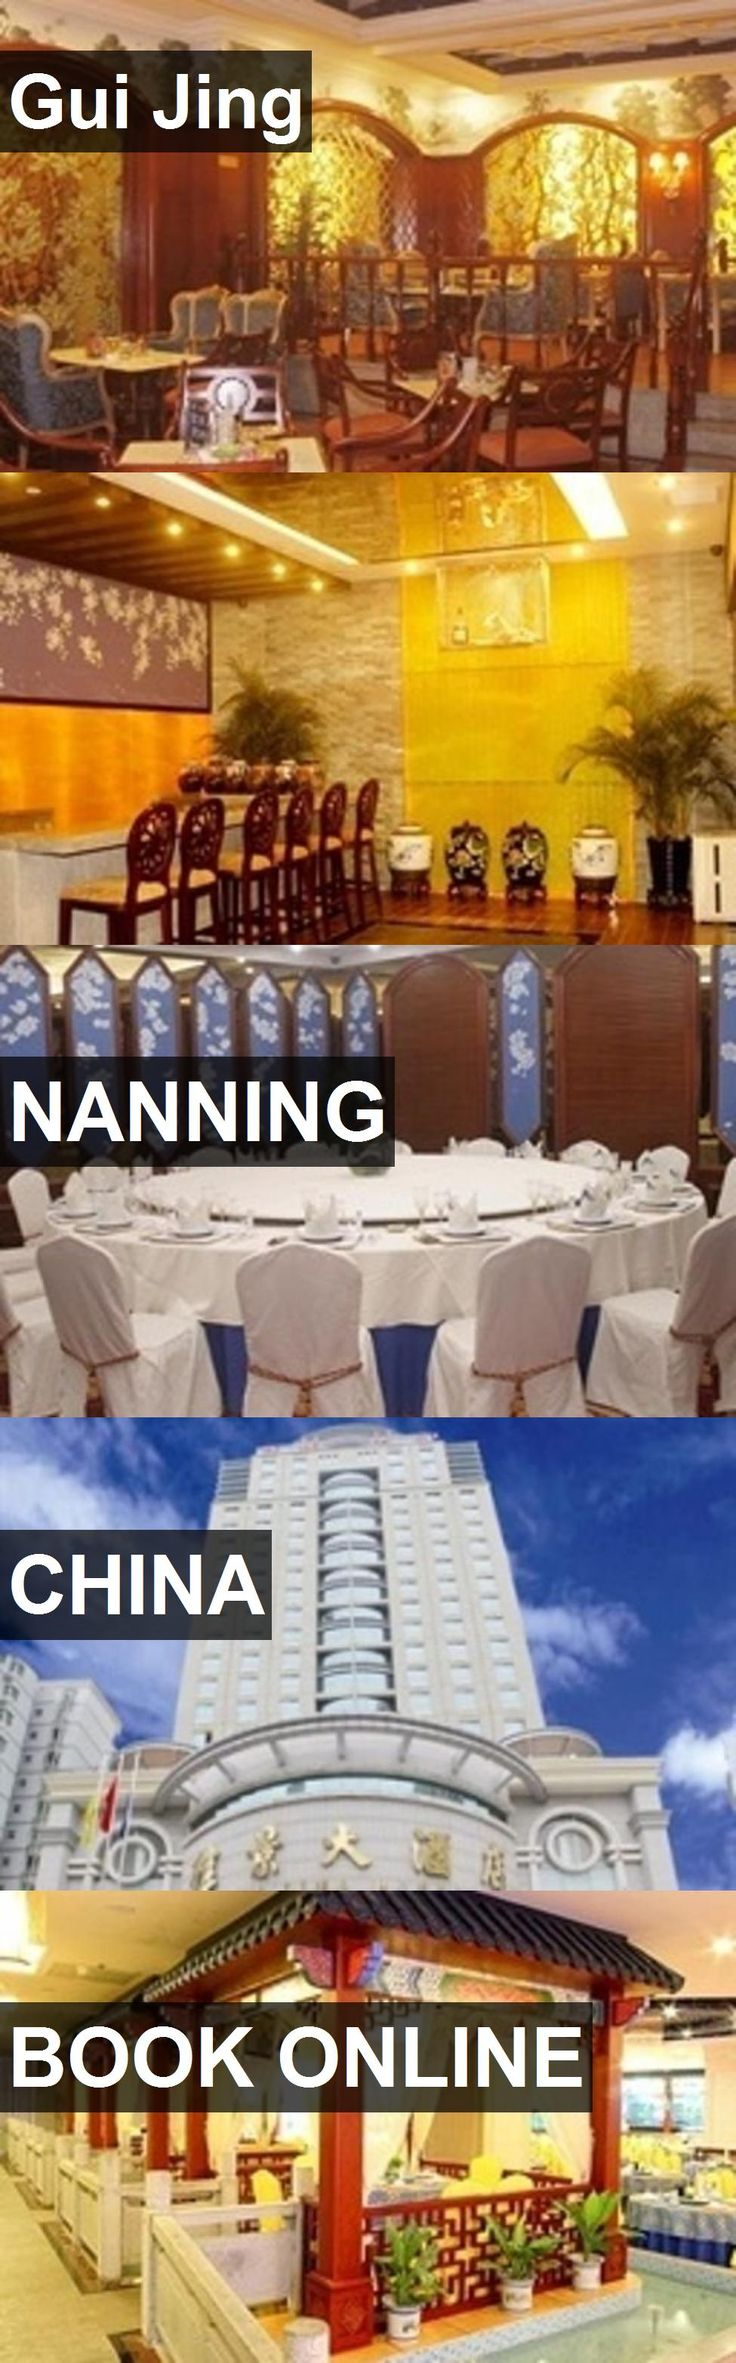 Hotel Gui Jing in Nanning, China. For more information, photos, reviews and best prices please follow the link. #China #Nanning #GuiJing #hotel #travel #vacation